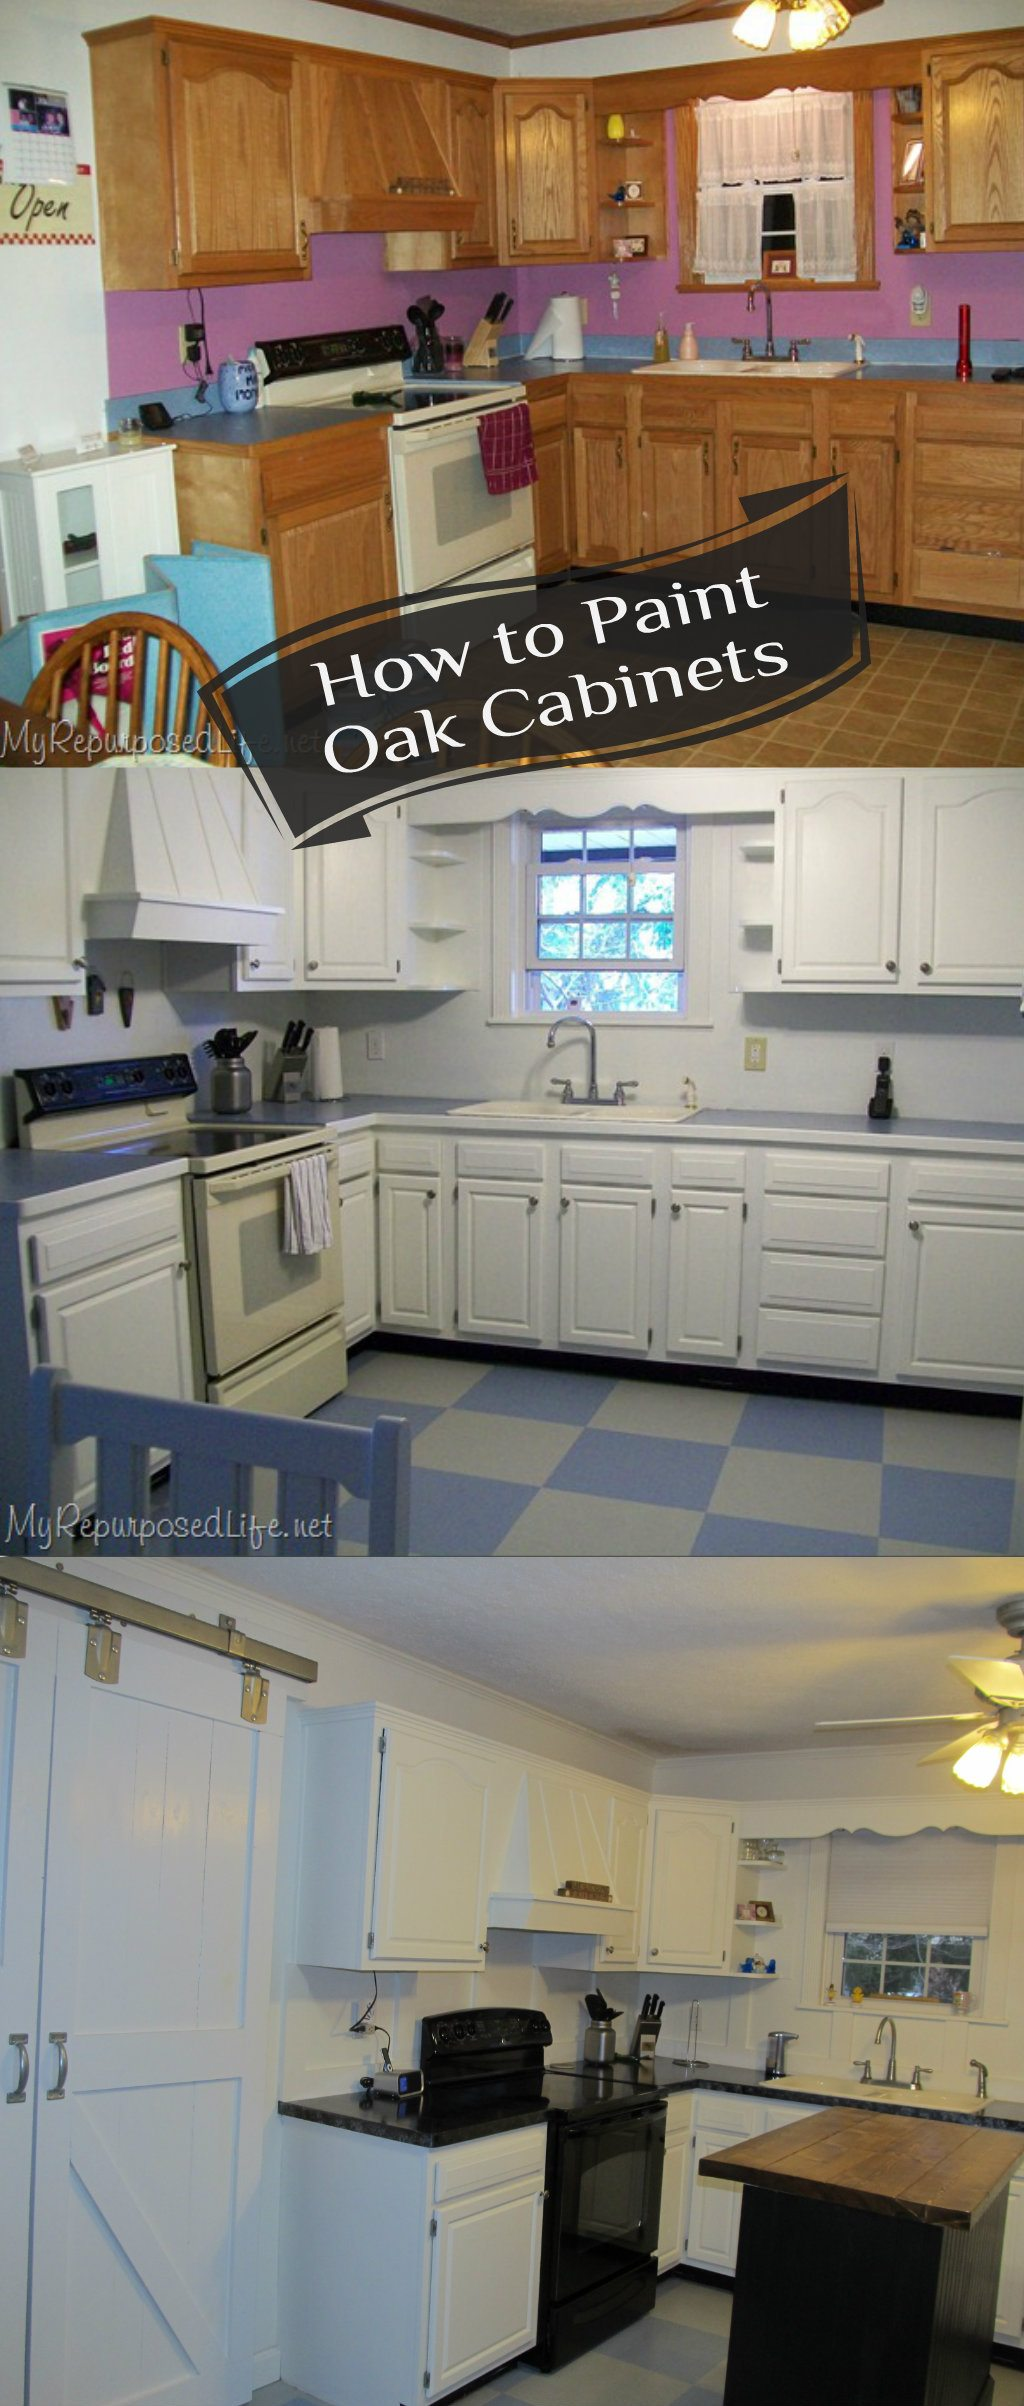 how to paint oak cabinets my repurposed life my repurposed life how to paint oak cabinets